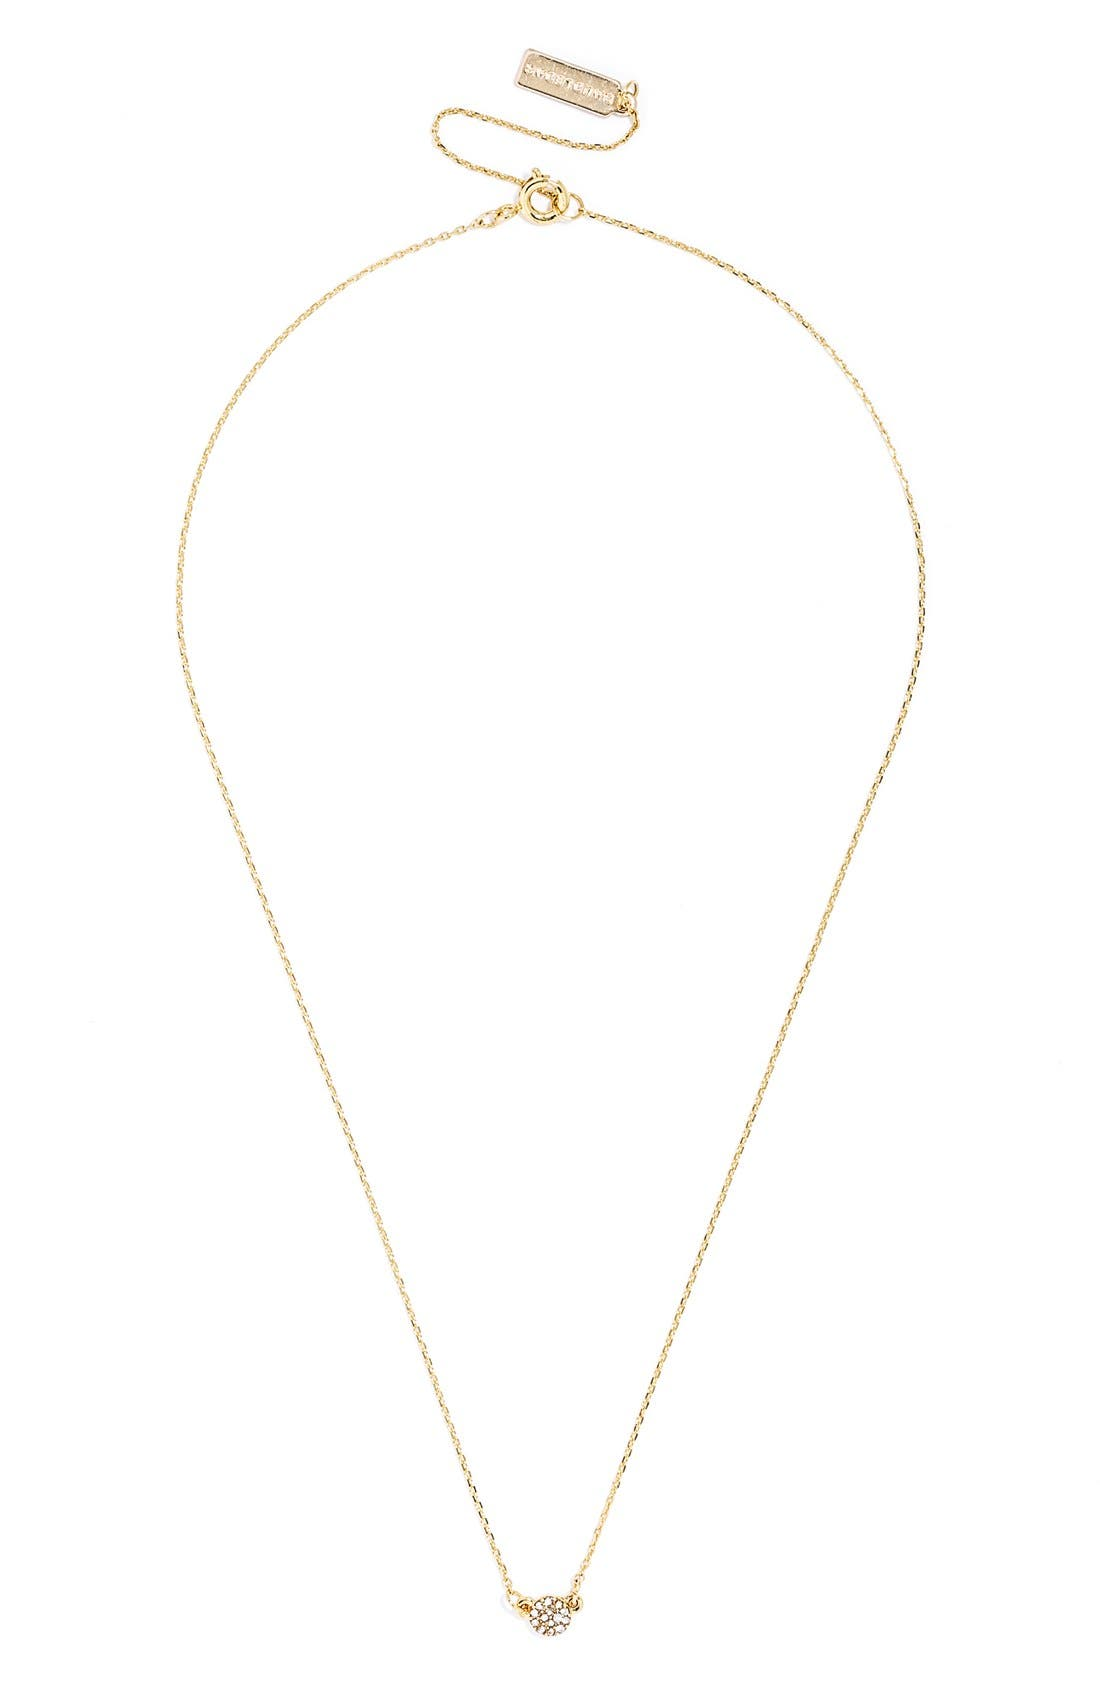 'Pyramid' Layered Necklace Gift Set,                             Alternate thumbnail 4, color,                             Gold